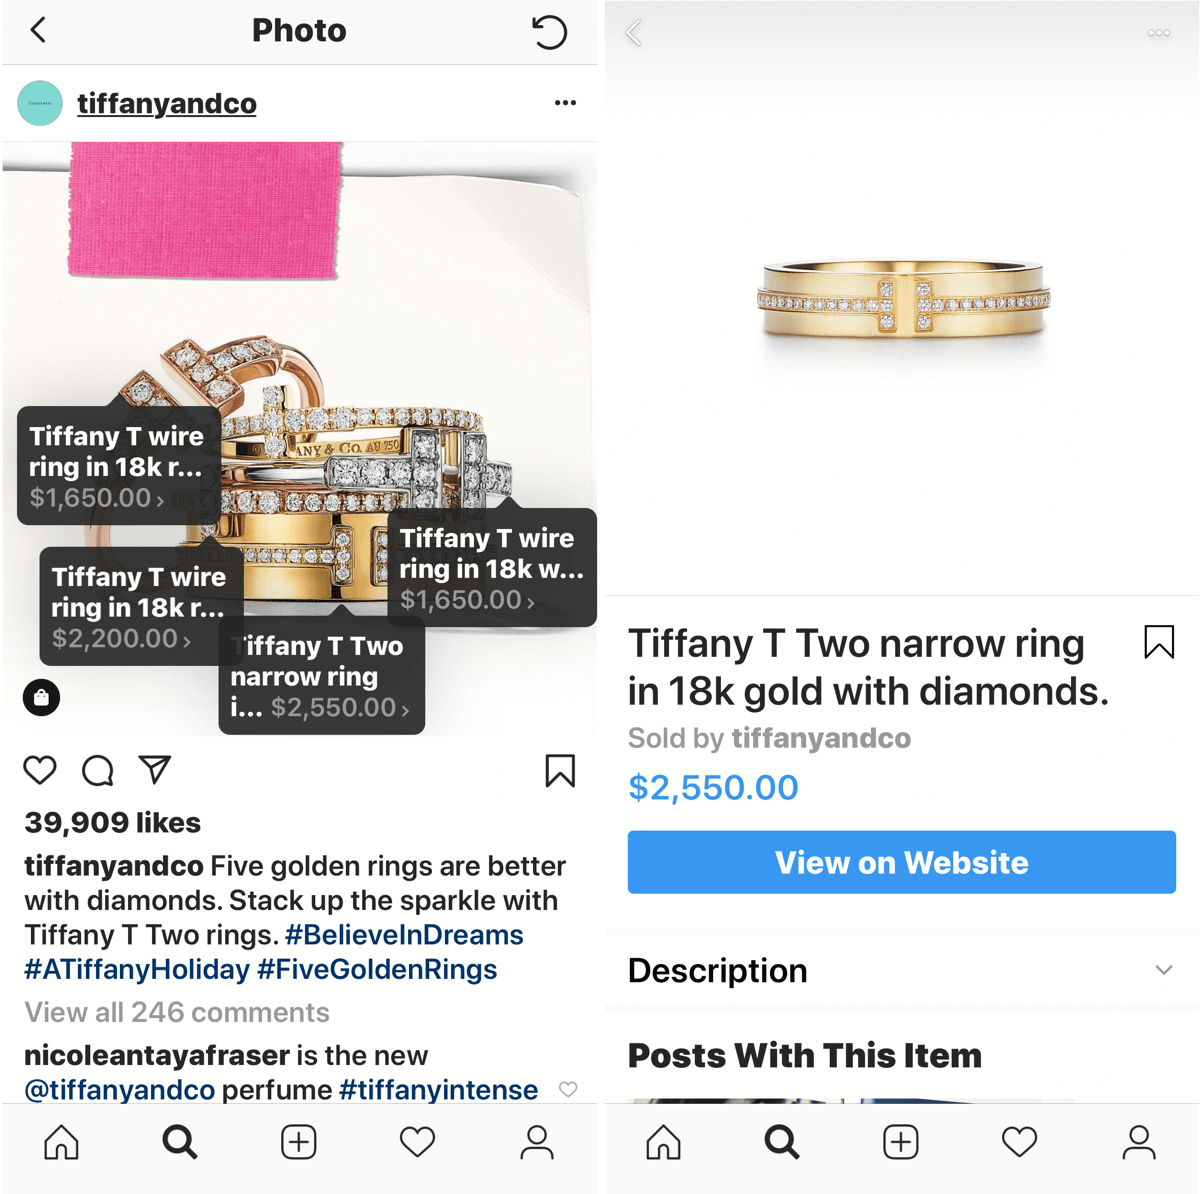 How to improve your instagram photos, shoppable image post by Tiffany & Co.